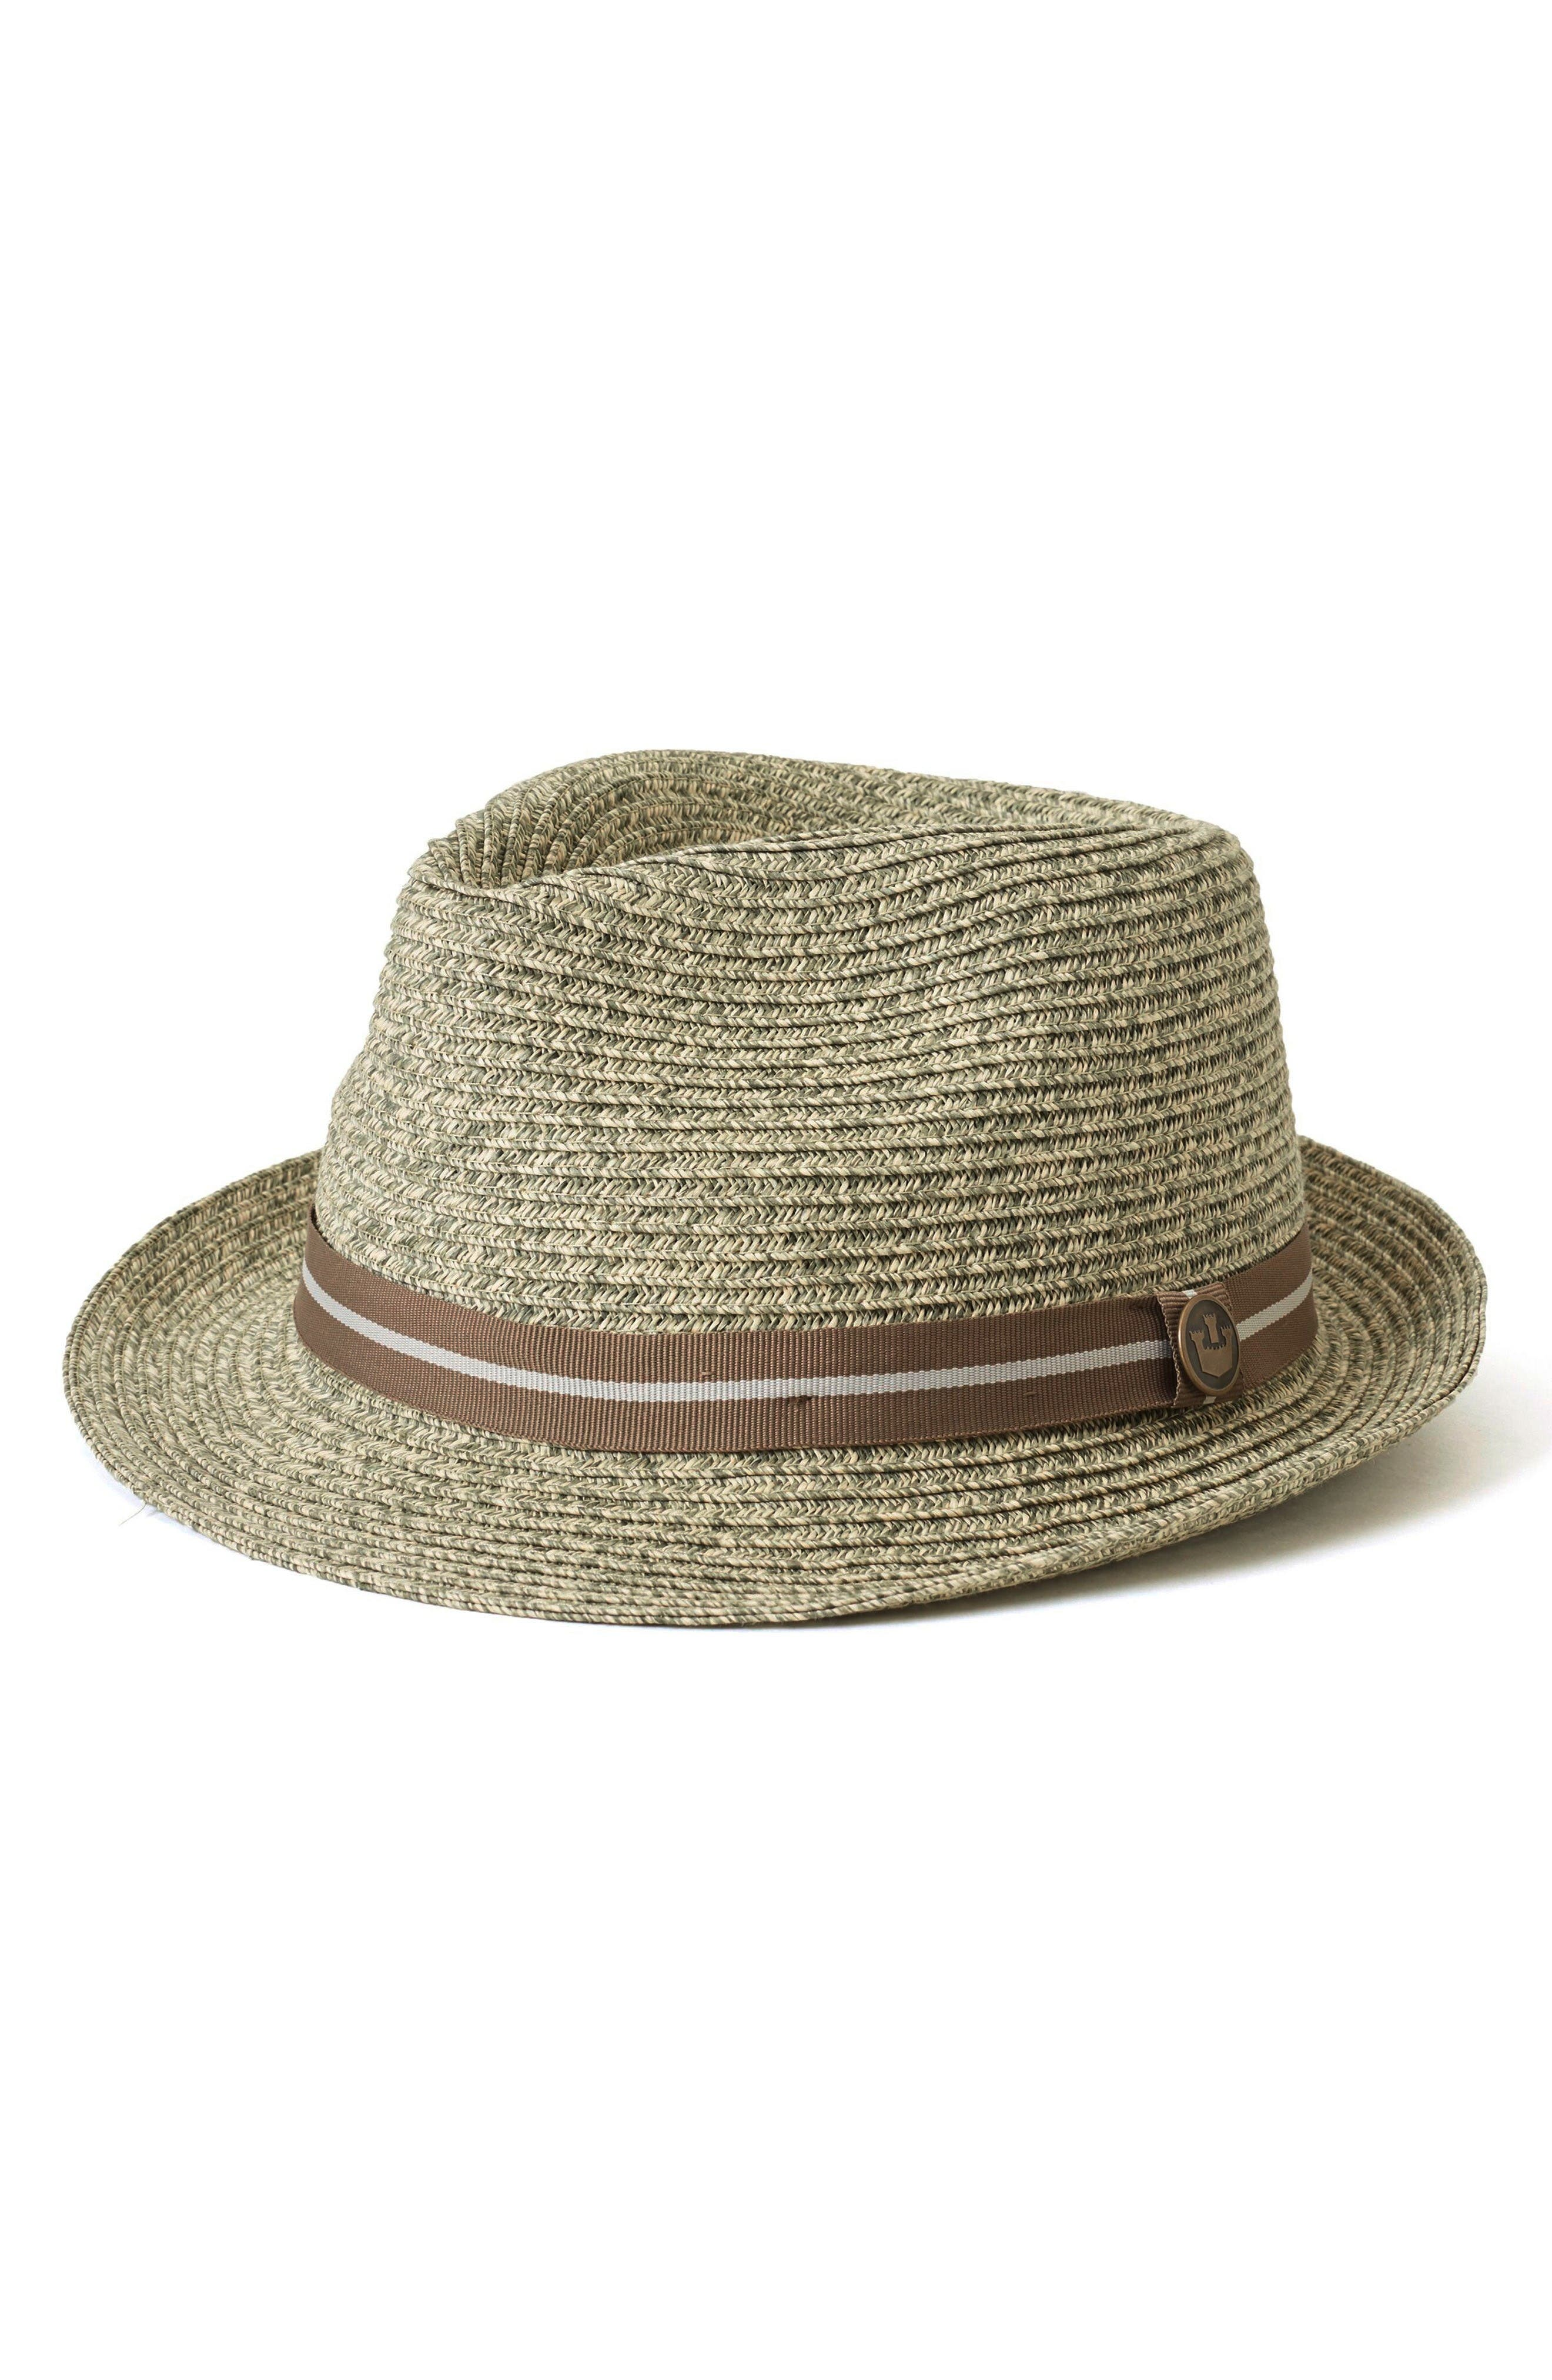 Alternate Image 1 Selected - Goorin Brothers Keep It Real Straw Trilby